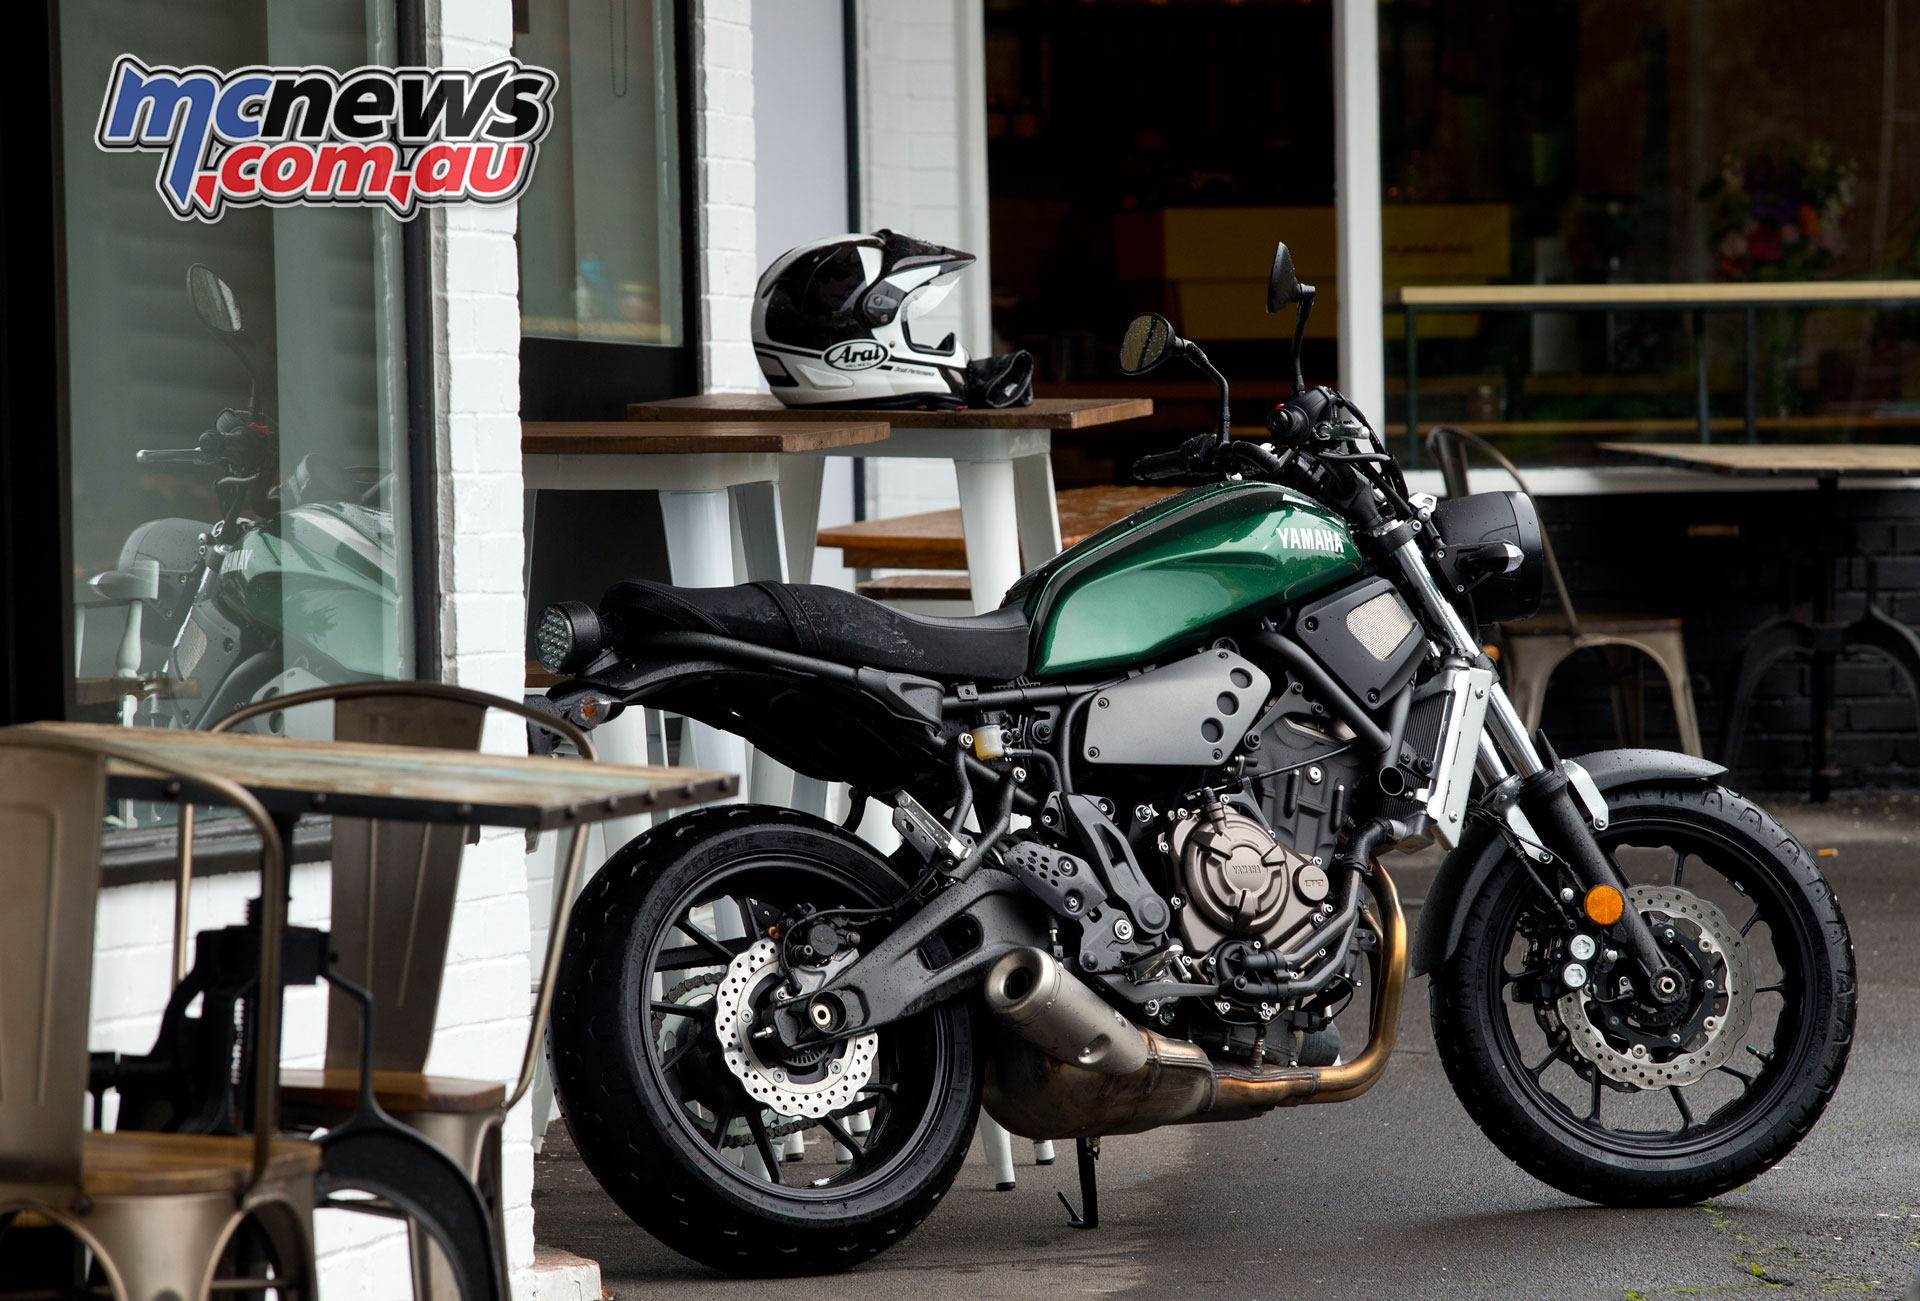 Outstanding Yamaha Xsr700 Review Lams Style Performance Mcnews Evergreenethics Interior Chair Design Evergreenethicsorg